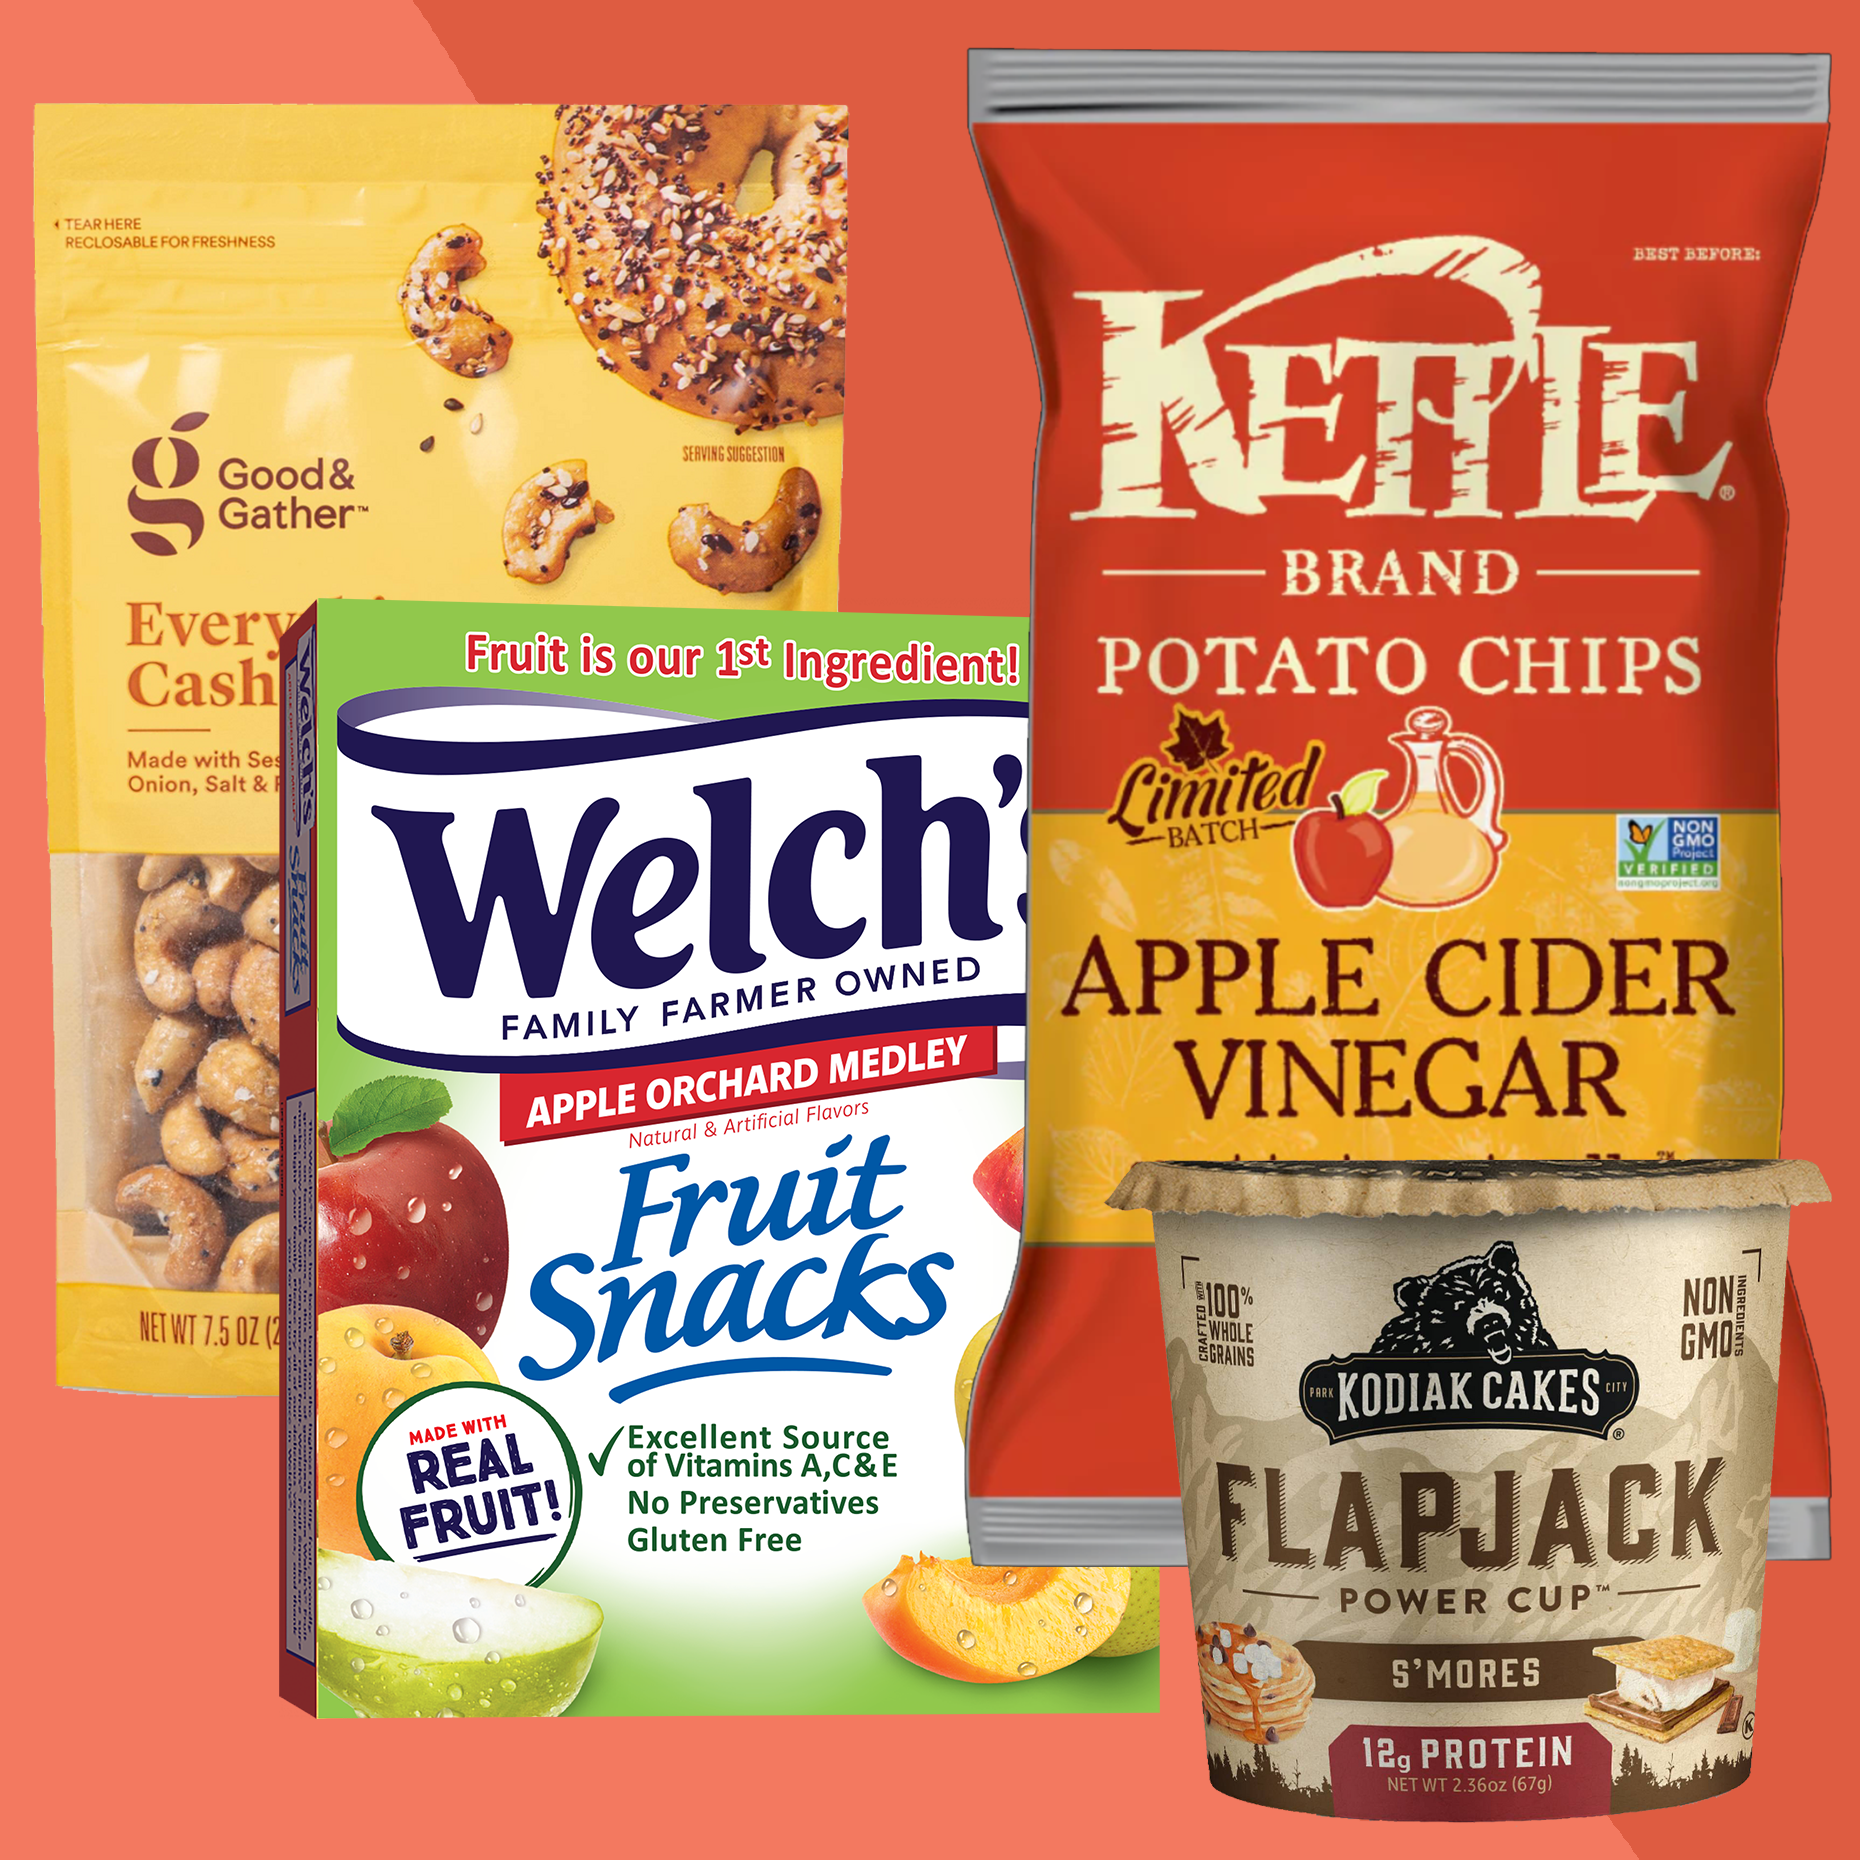 a bag of everything cashes, a box of welch's fruit snacks, a bag of kettle apple cider vinegar chips, and a cup of s'mores oatmeal